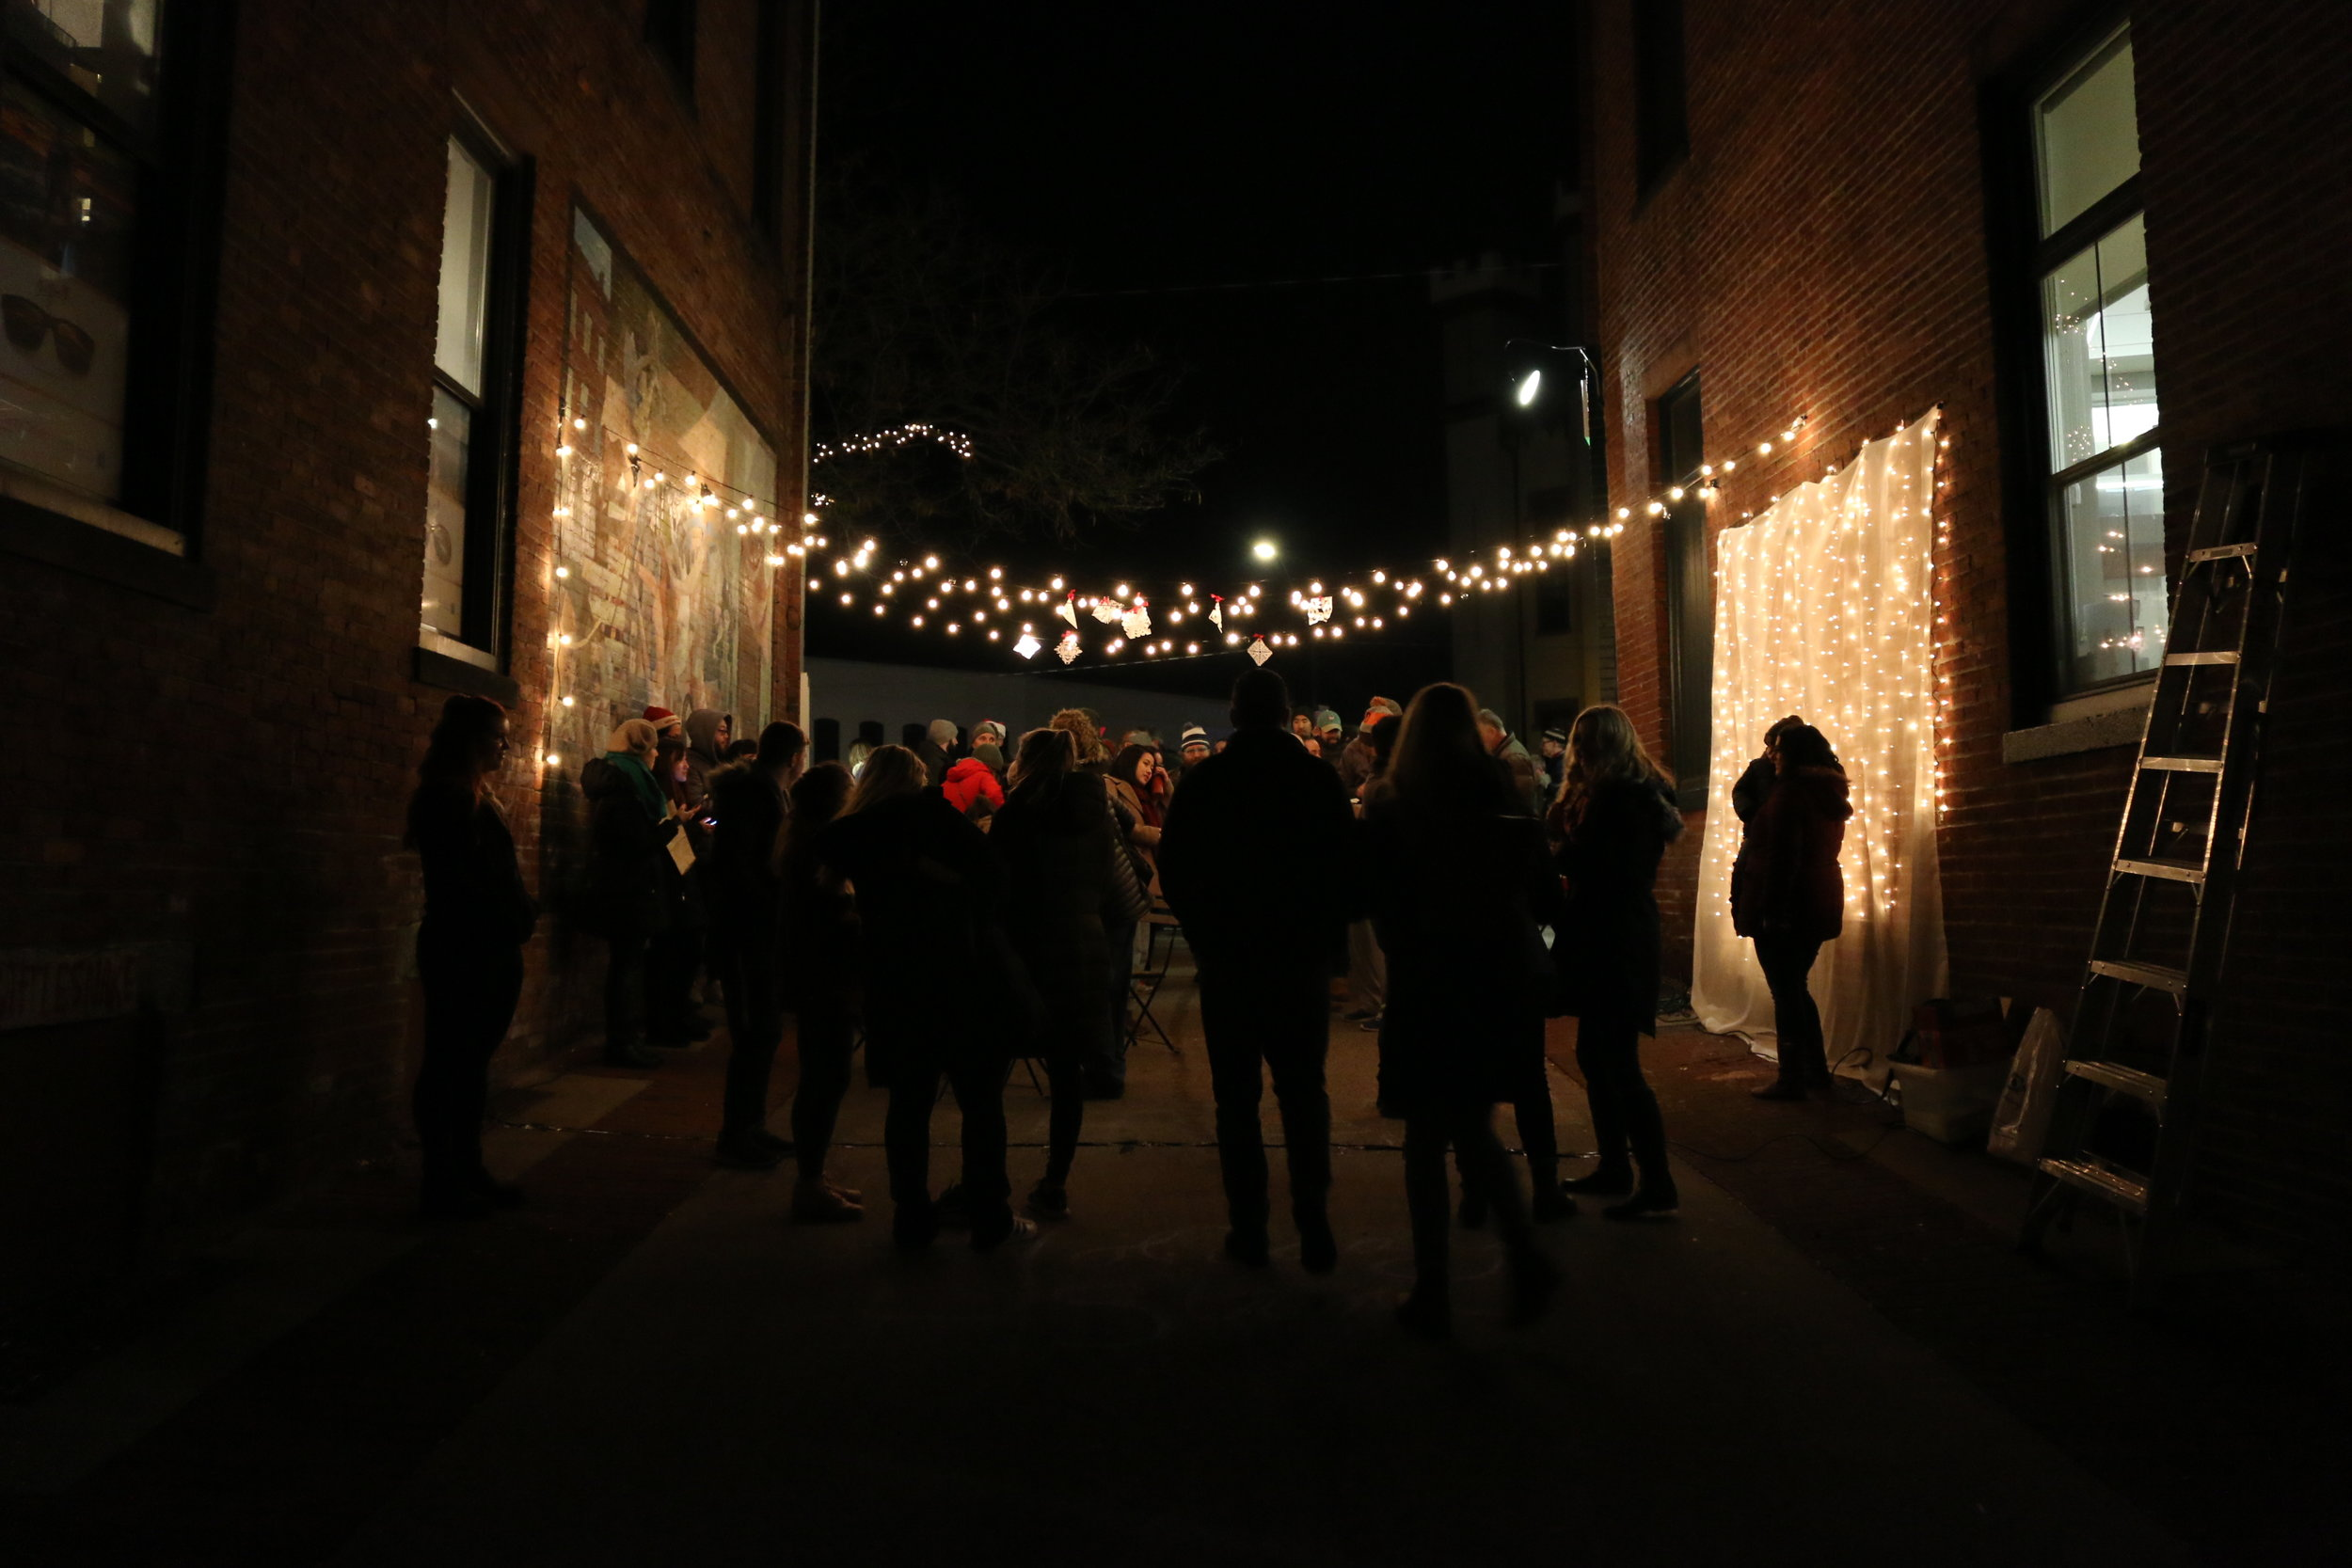 Students Demonstrate Tactical Urbanism in Northampton, MA - On December 1, 2018, in Northampton, MA, UMass Students studying sustainable community development used tactical urbanism to transform a normally empty alleyway into a fun, festive, public gathering as part of the annually Holiday Stroll in center of town.A photo-story of the event was published by The Amherst Wire. click here to view